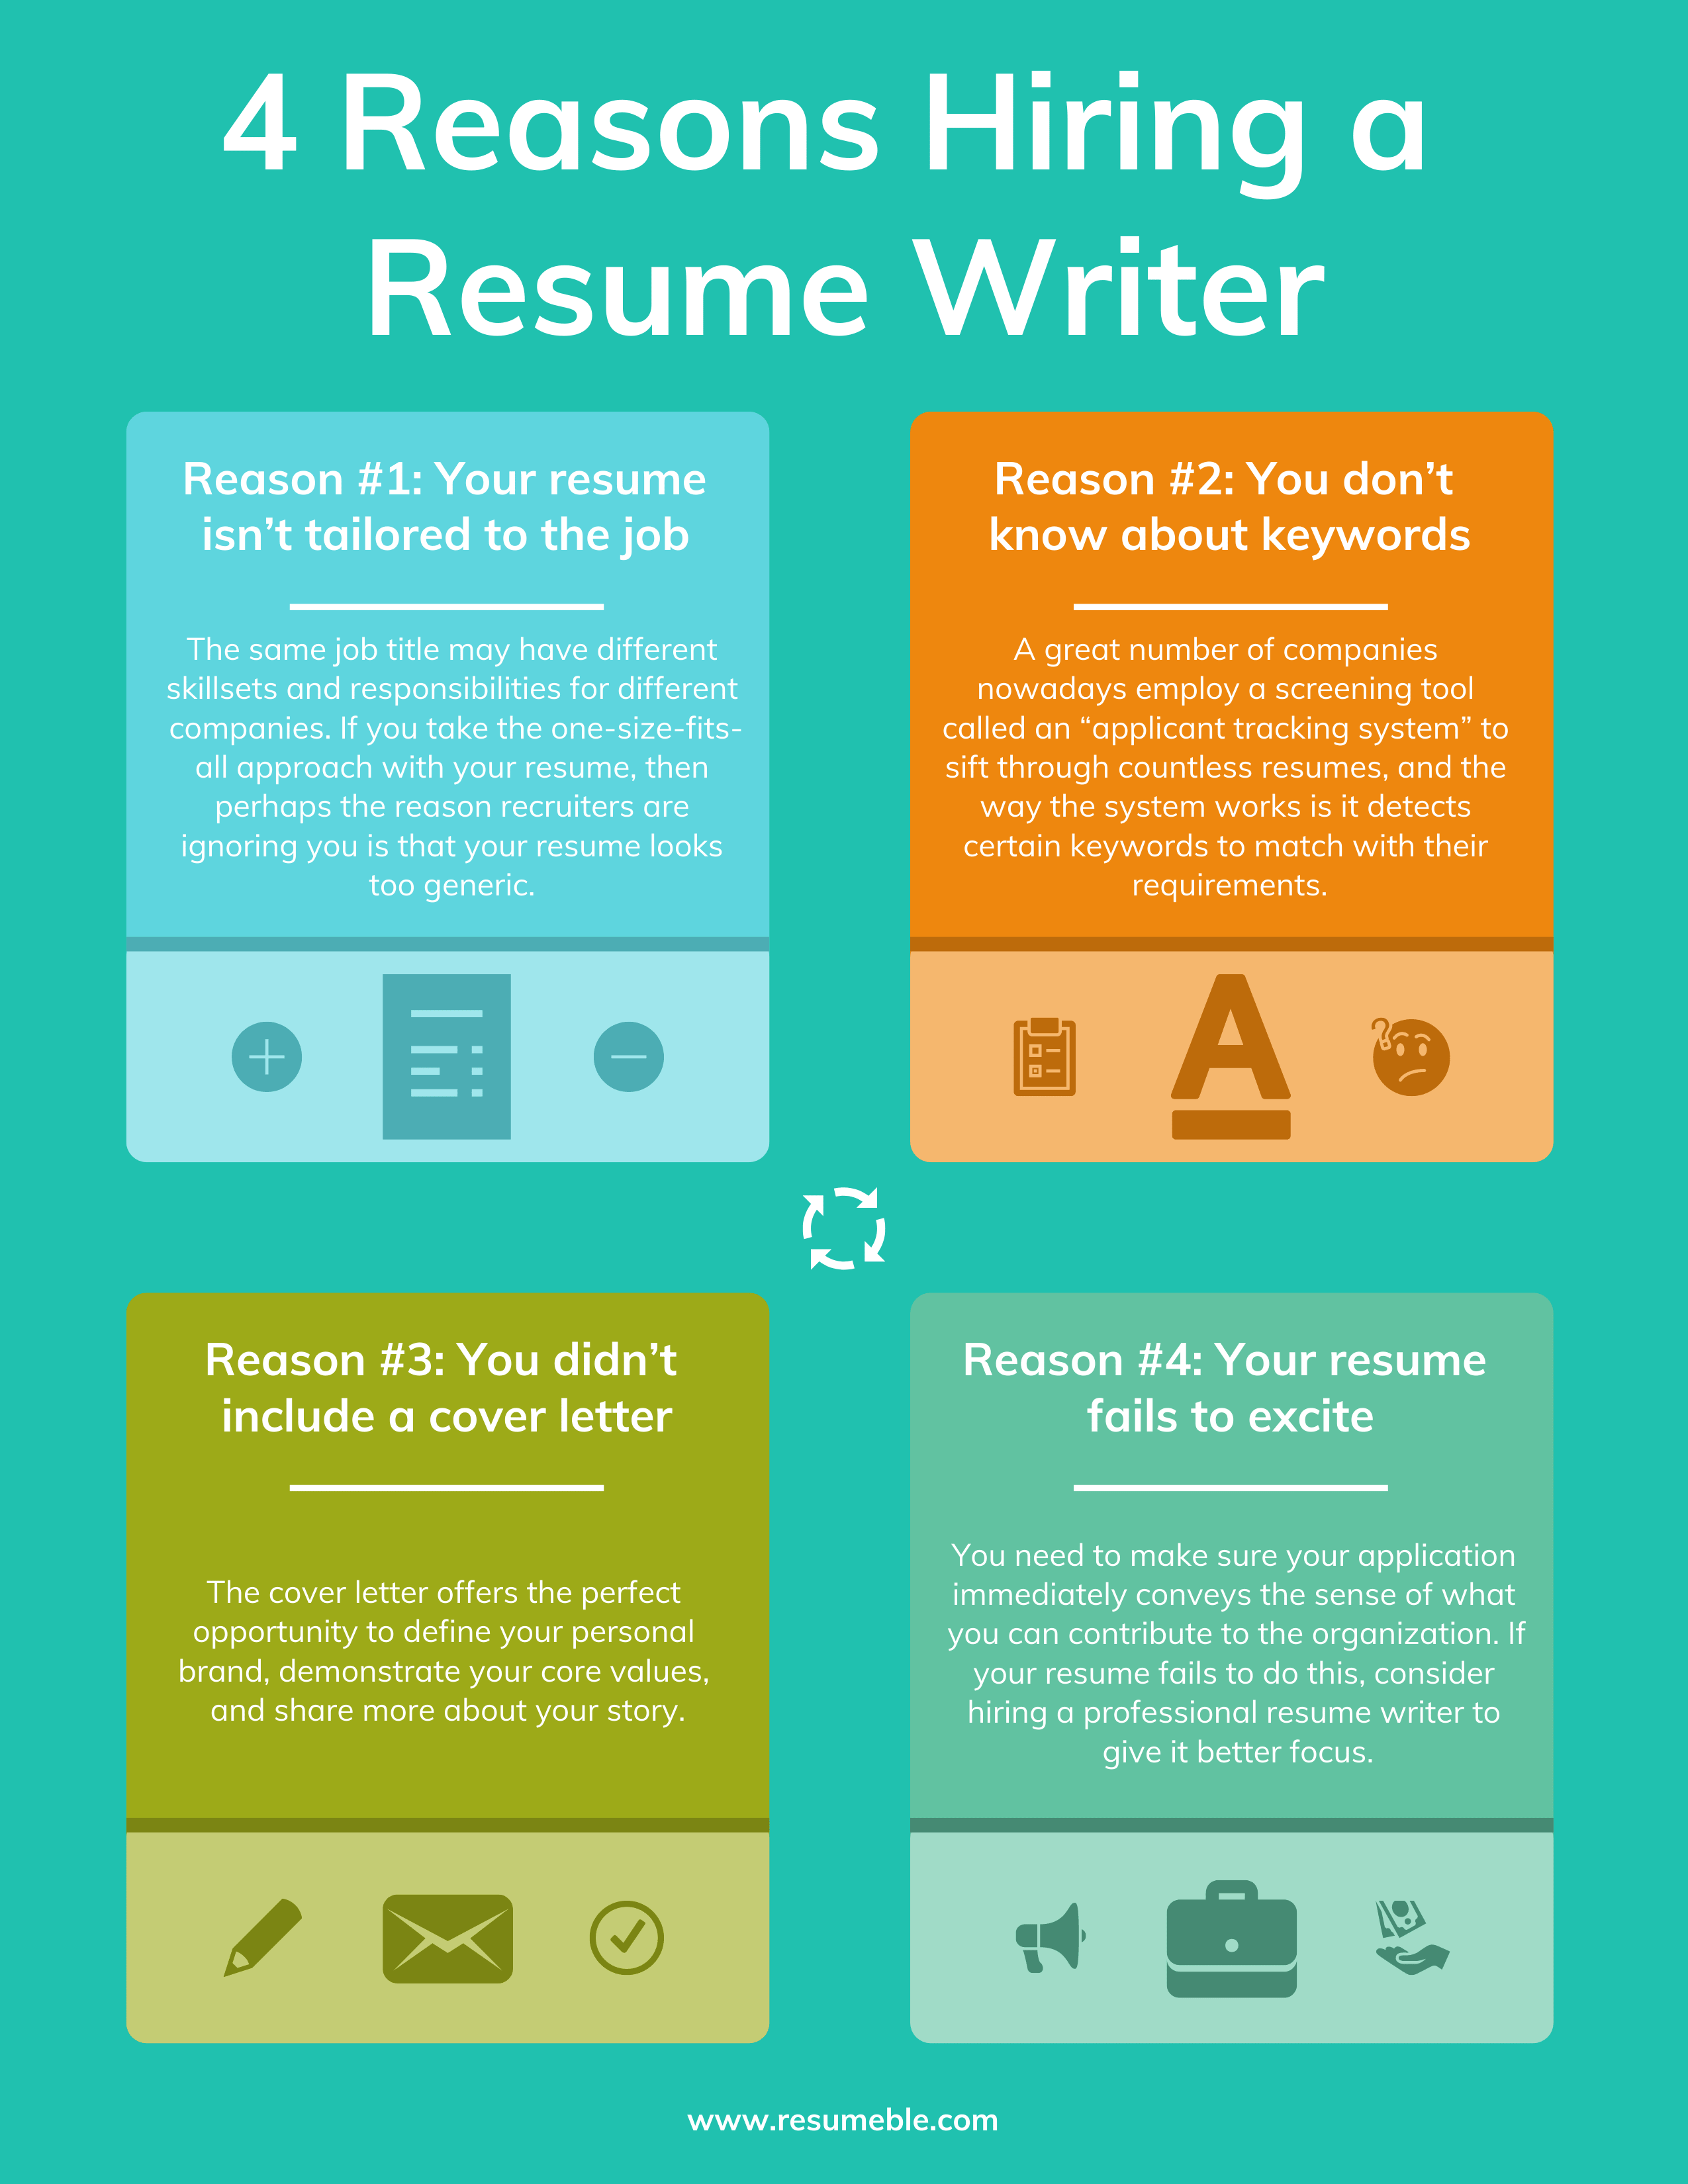 fix my resume - hire a resume writer